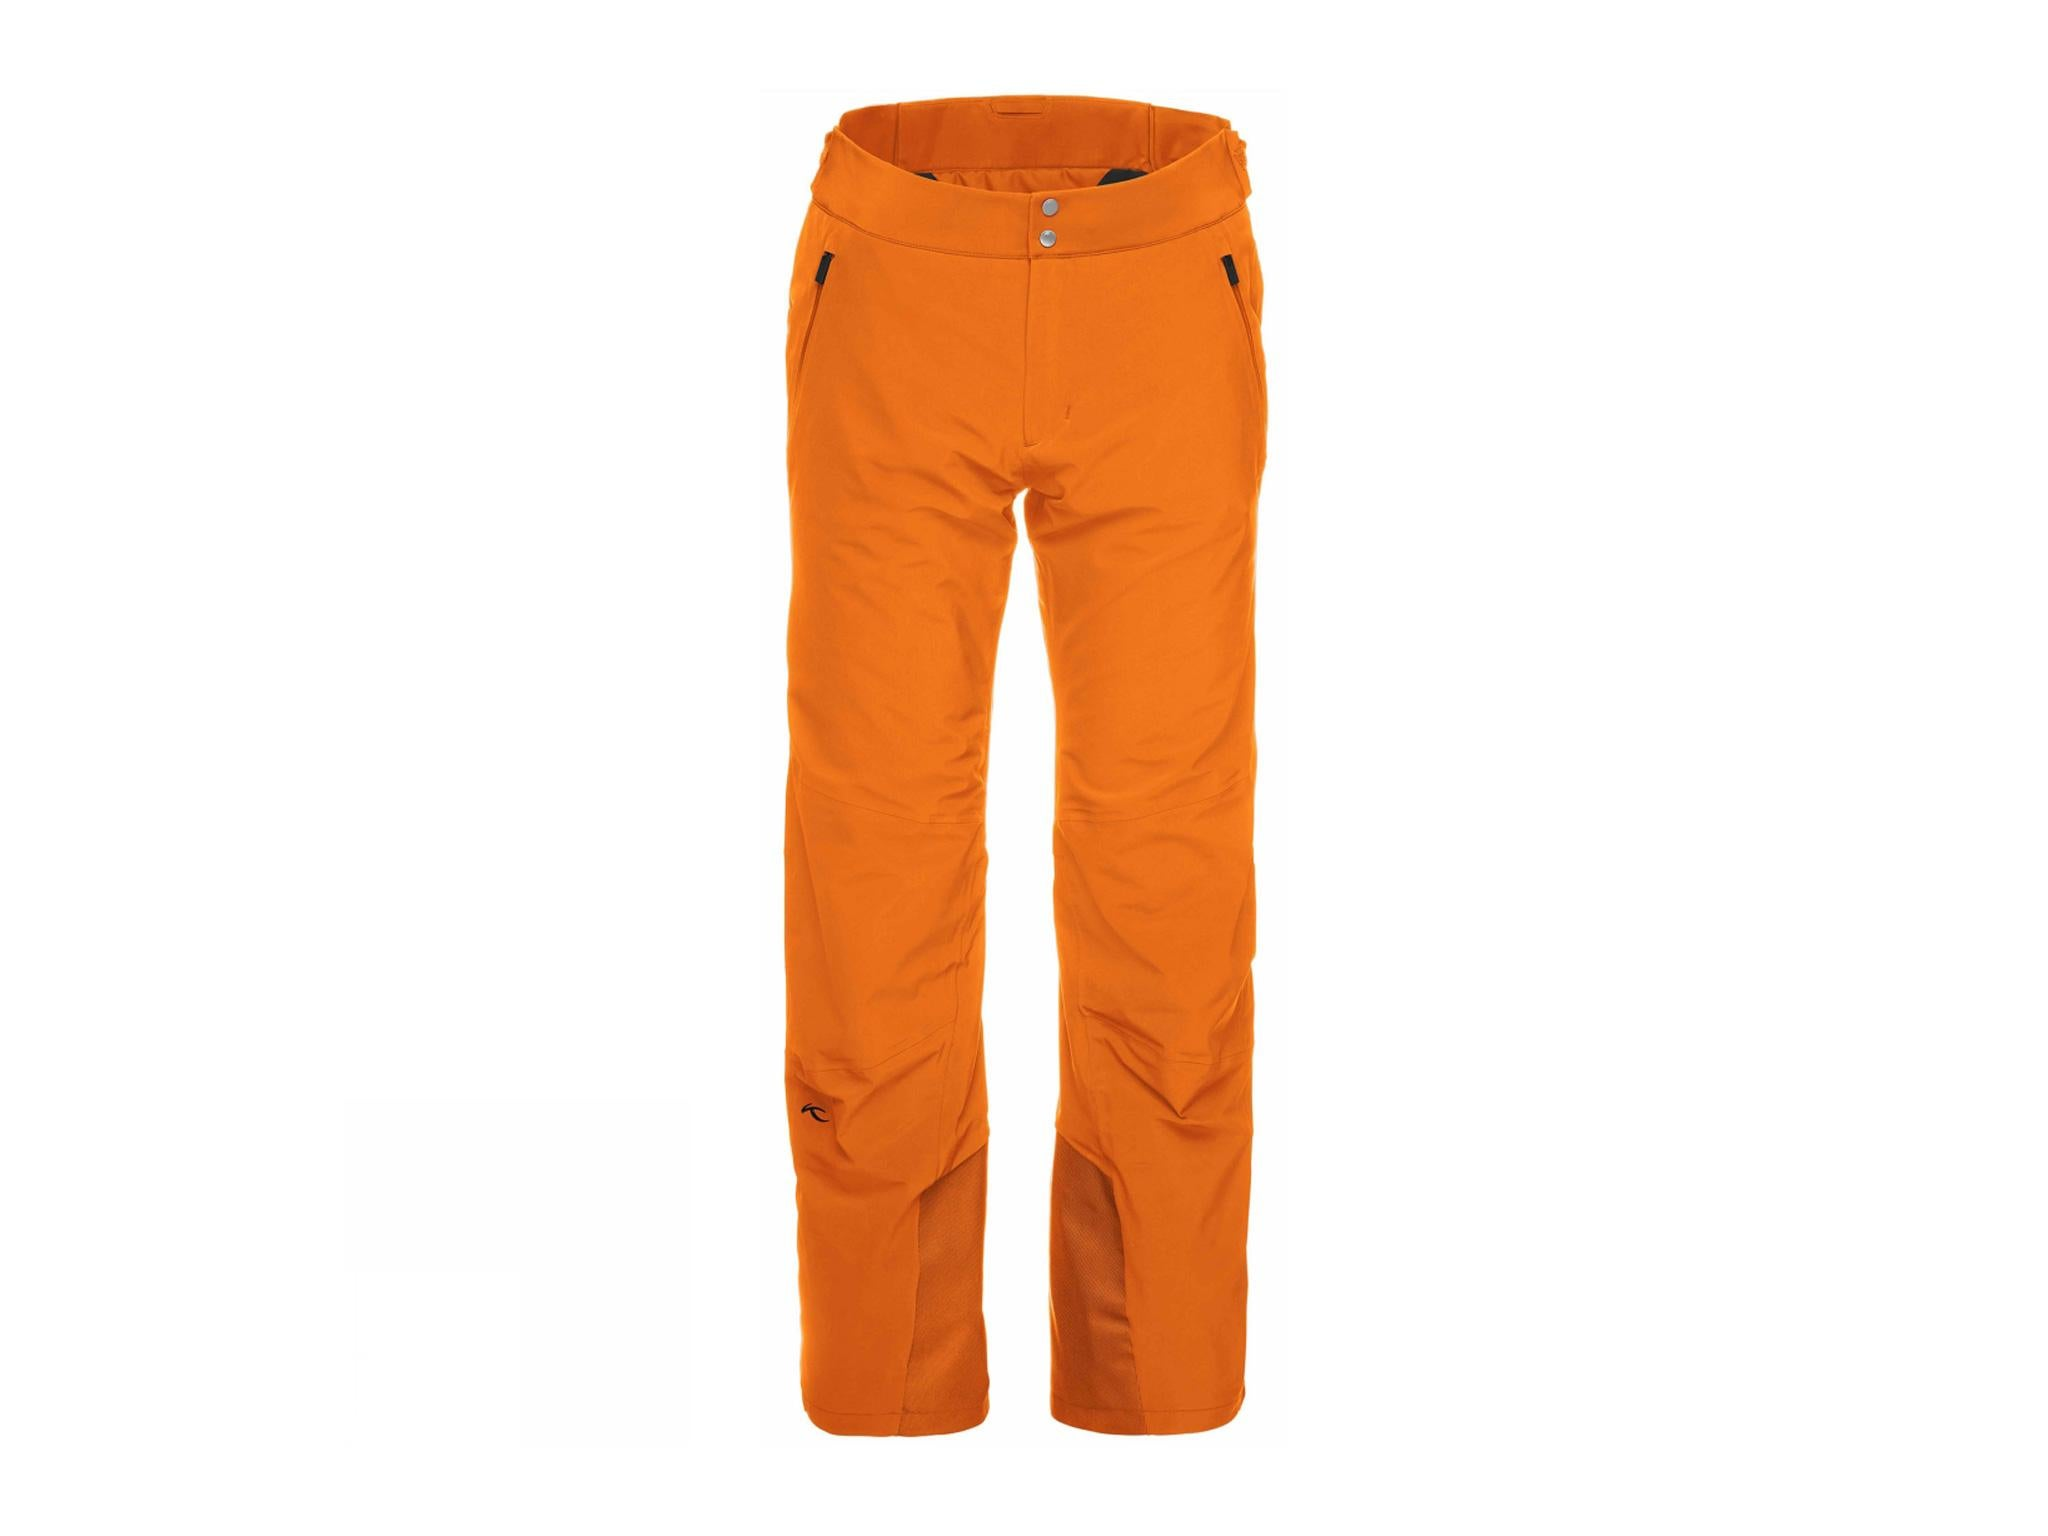 c0a8ec8368 13 best men's ski and snowboard pants | The Independent